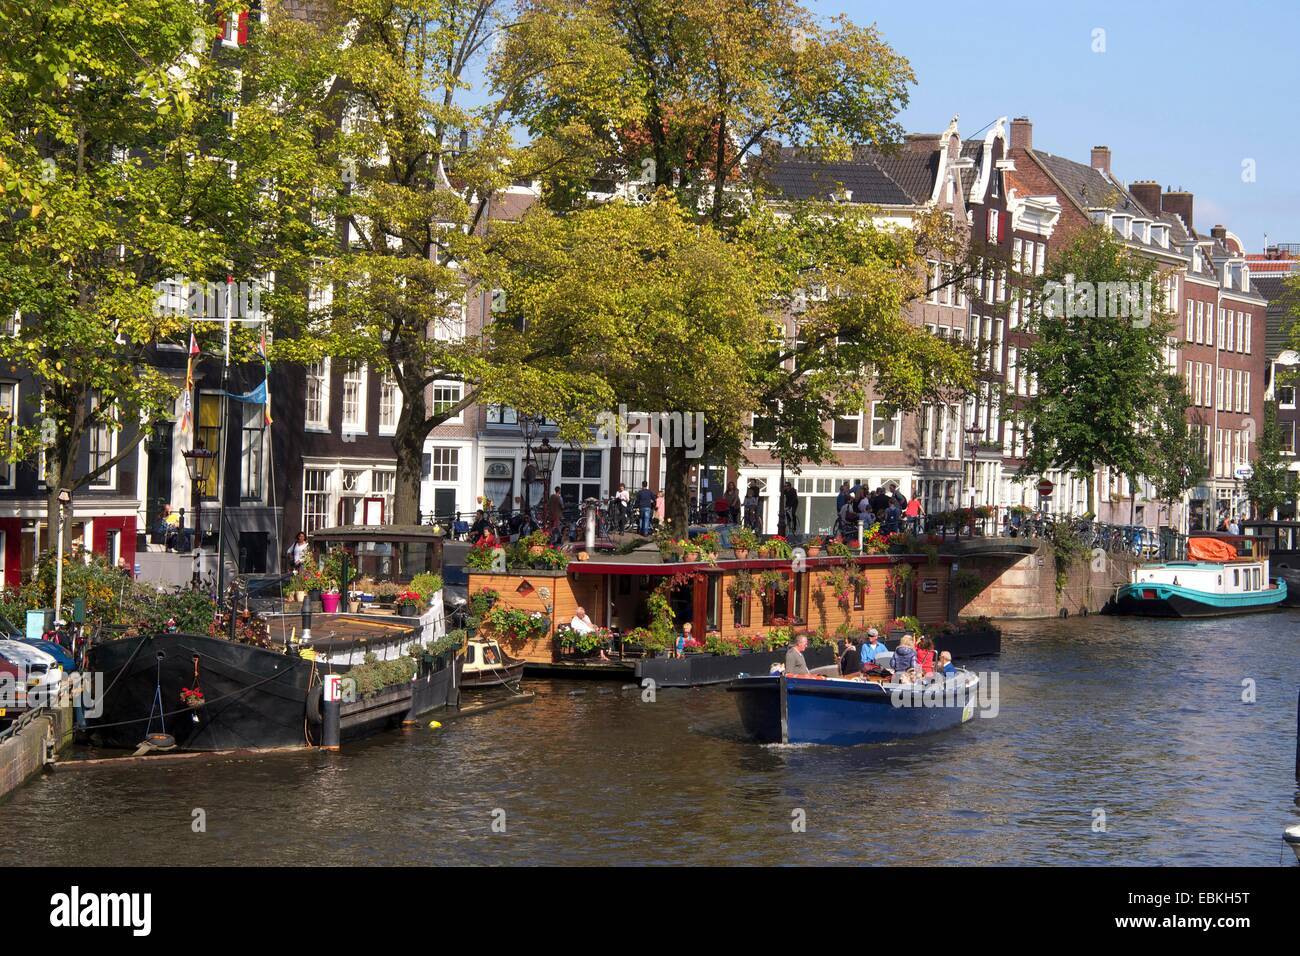 Prinsengracht canal, Amsterdam, province of North Holland, Holland, The Netherlands, Europe - Stock Image